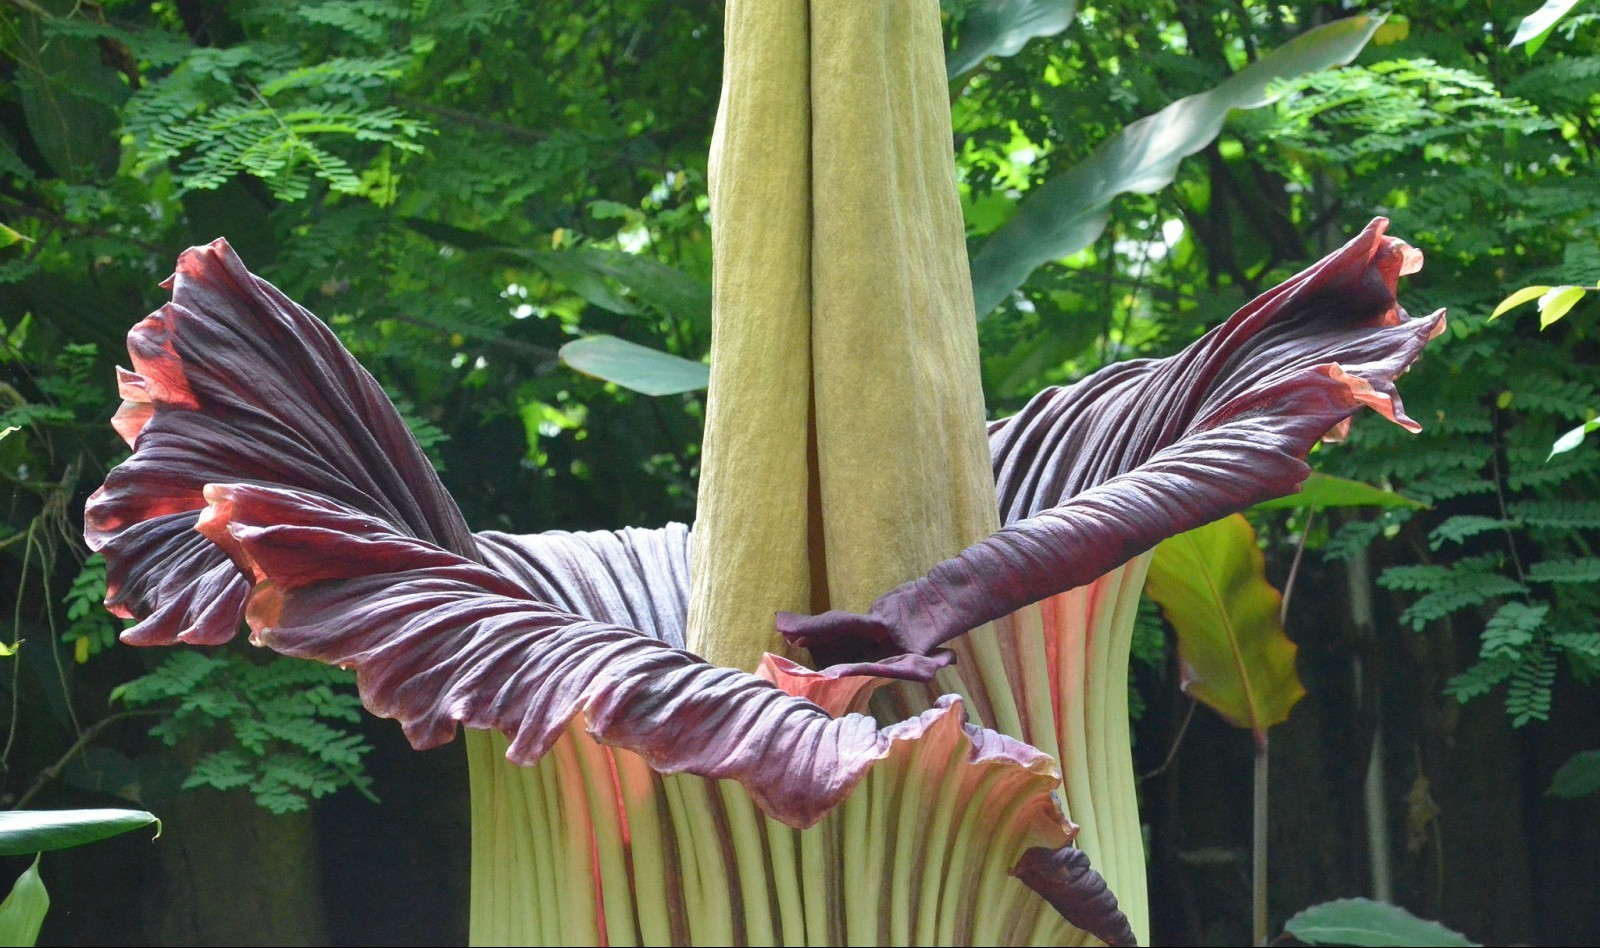 Titan_Arum_at_Bayreuth_University_-_Second_Day_11 (2)